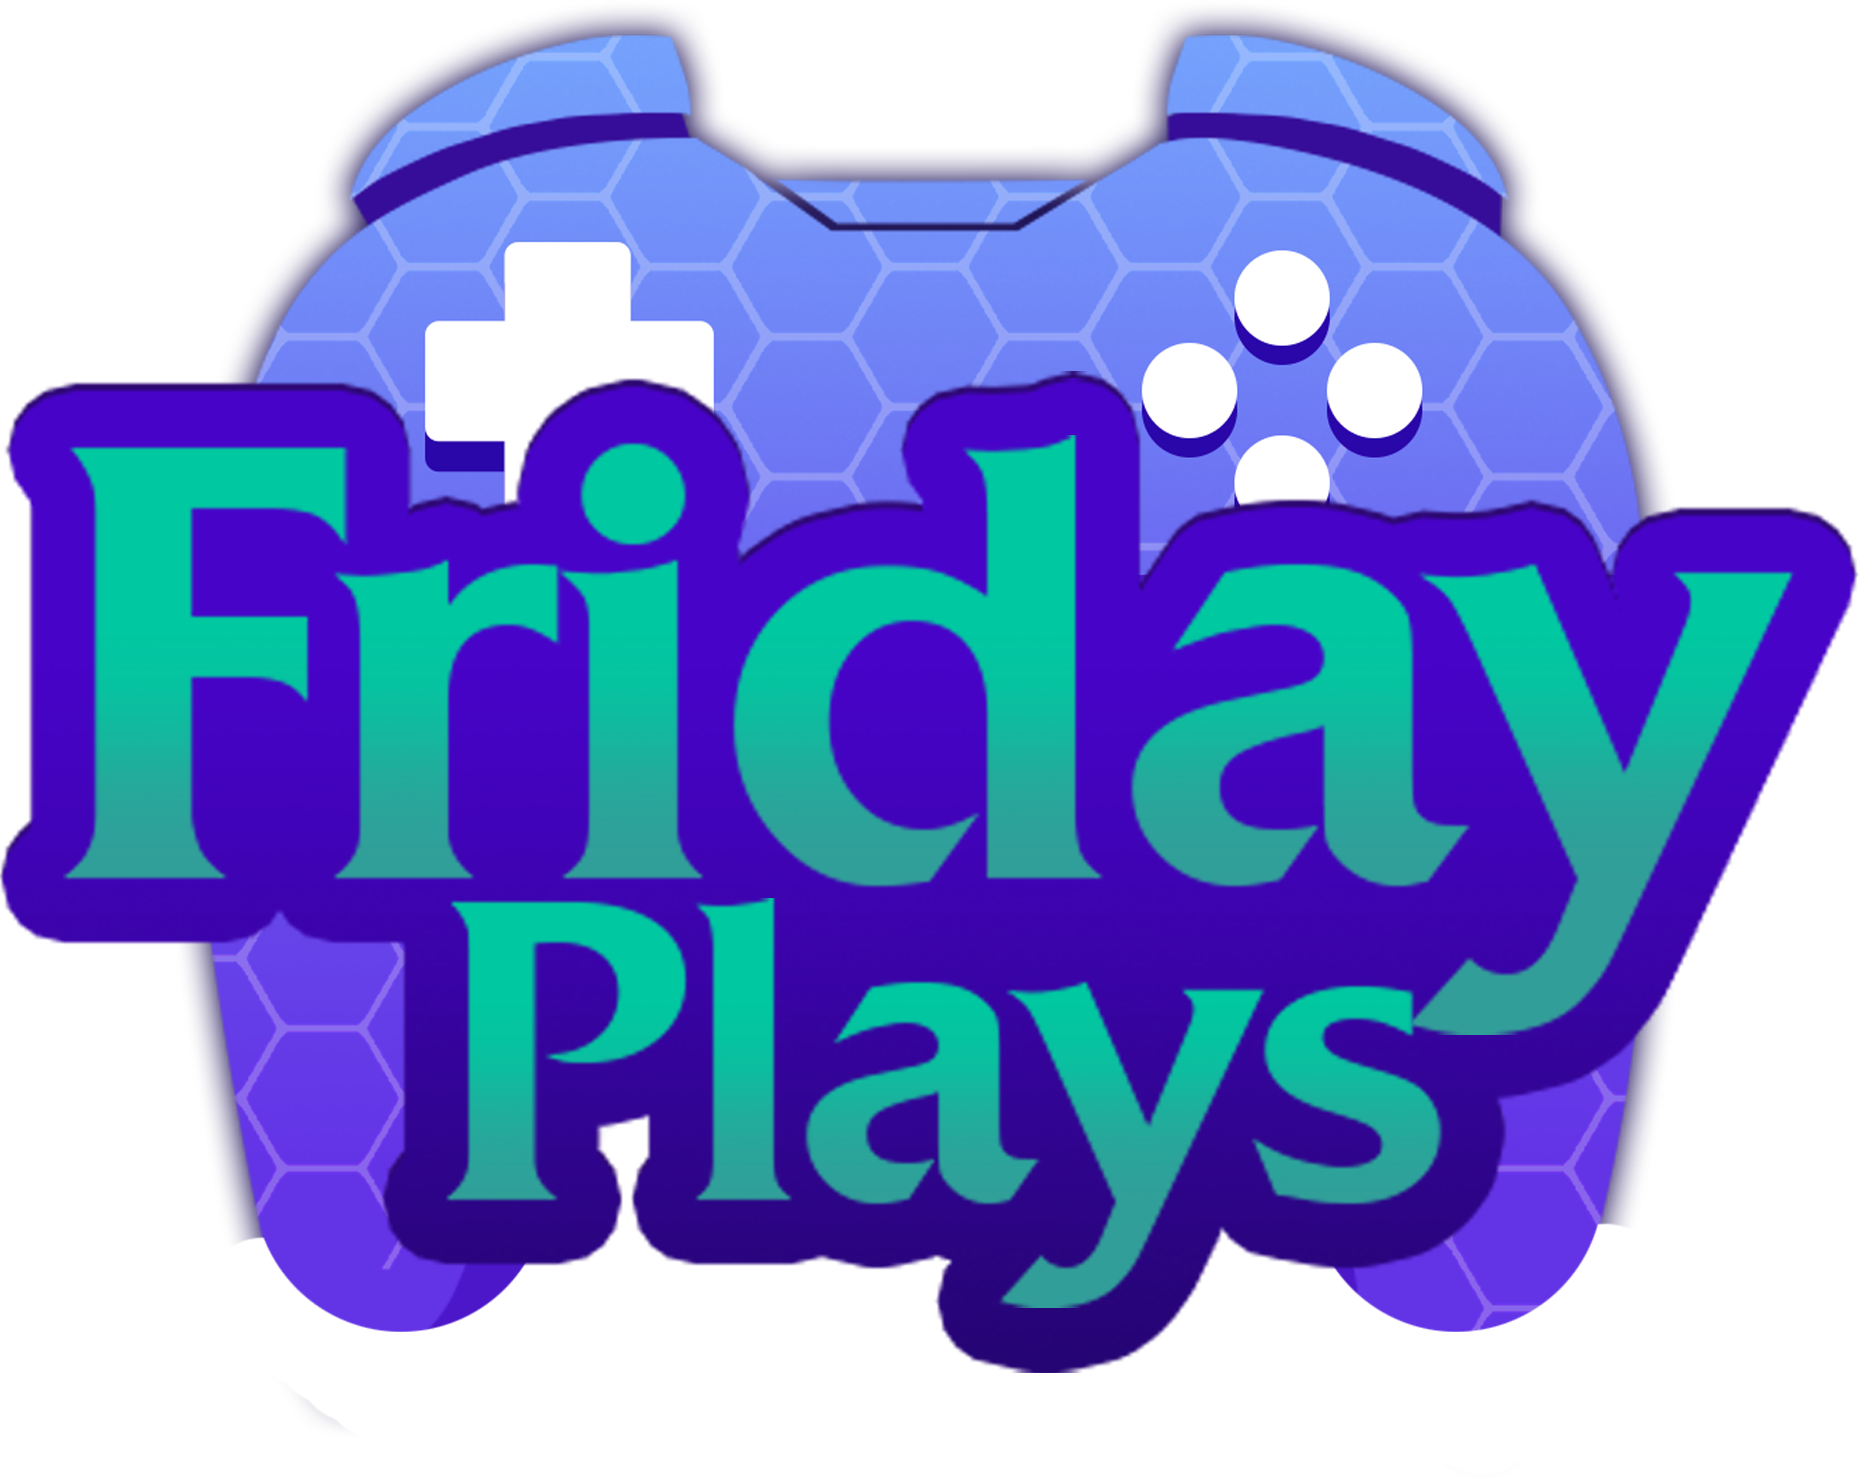 FridayPlays